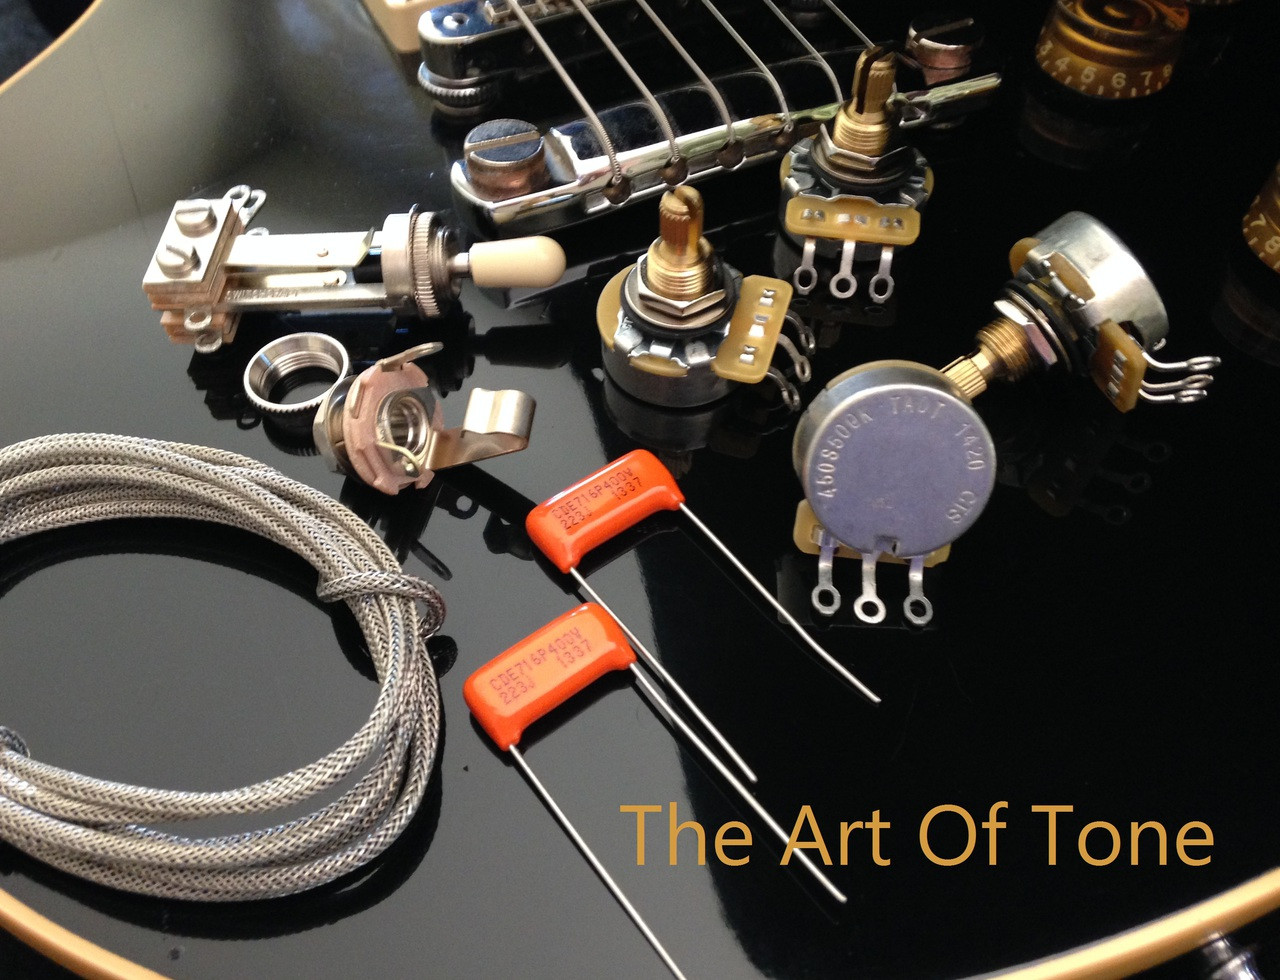 Gibson Lp Wiring Quick Start Guide Of Diagram 50s Schematic Les Paul Short Shaft Cts Taot 500k Pots Orange Drop Caps Rh Theartoftone Com Kit